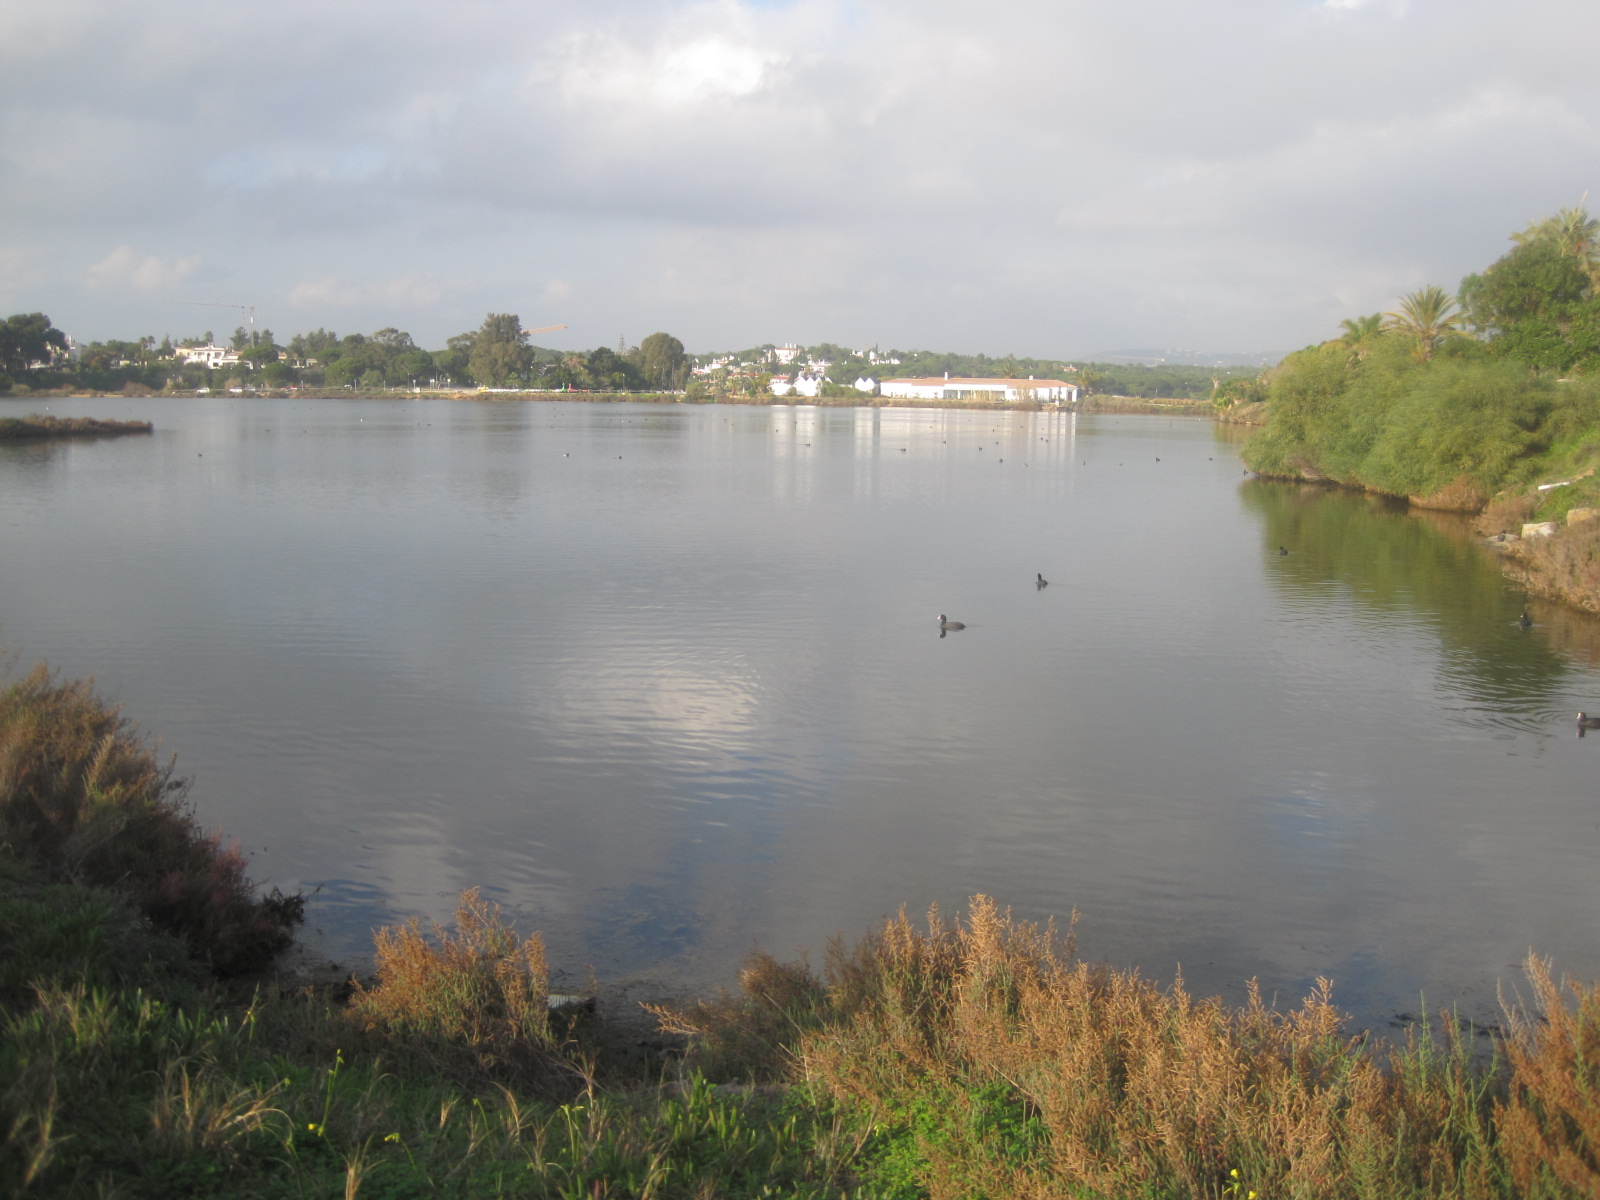 The lake and the country club